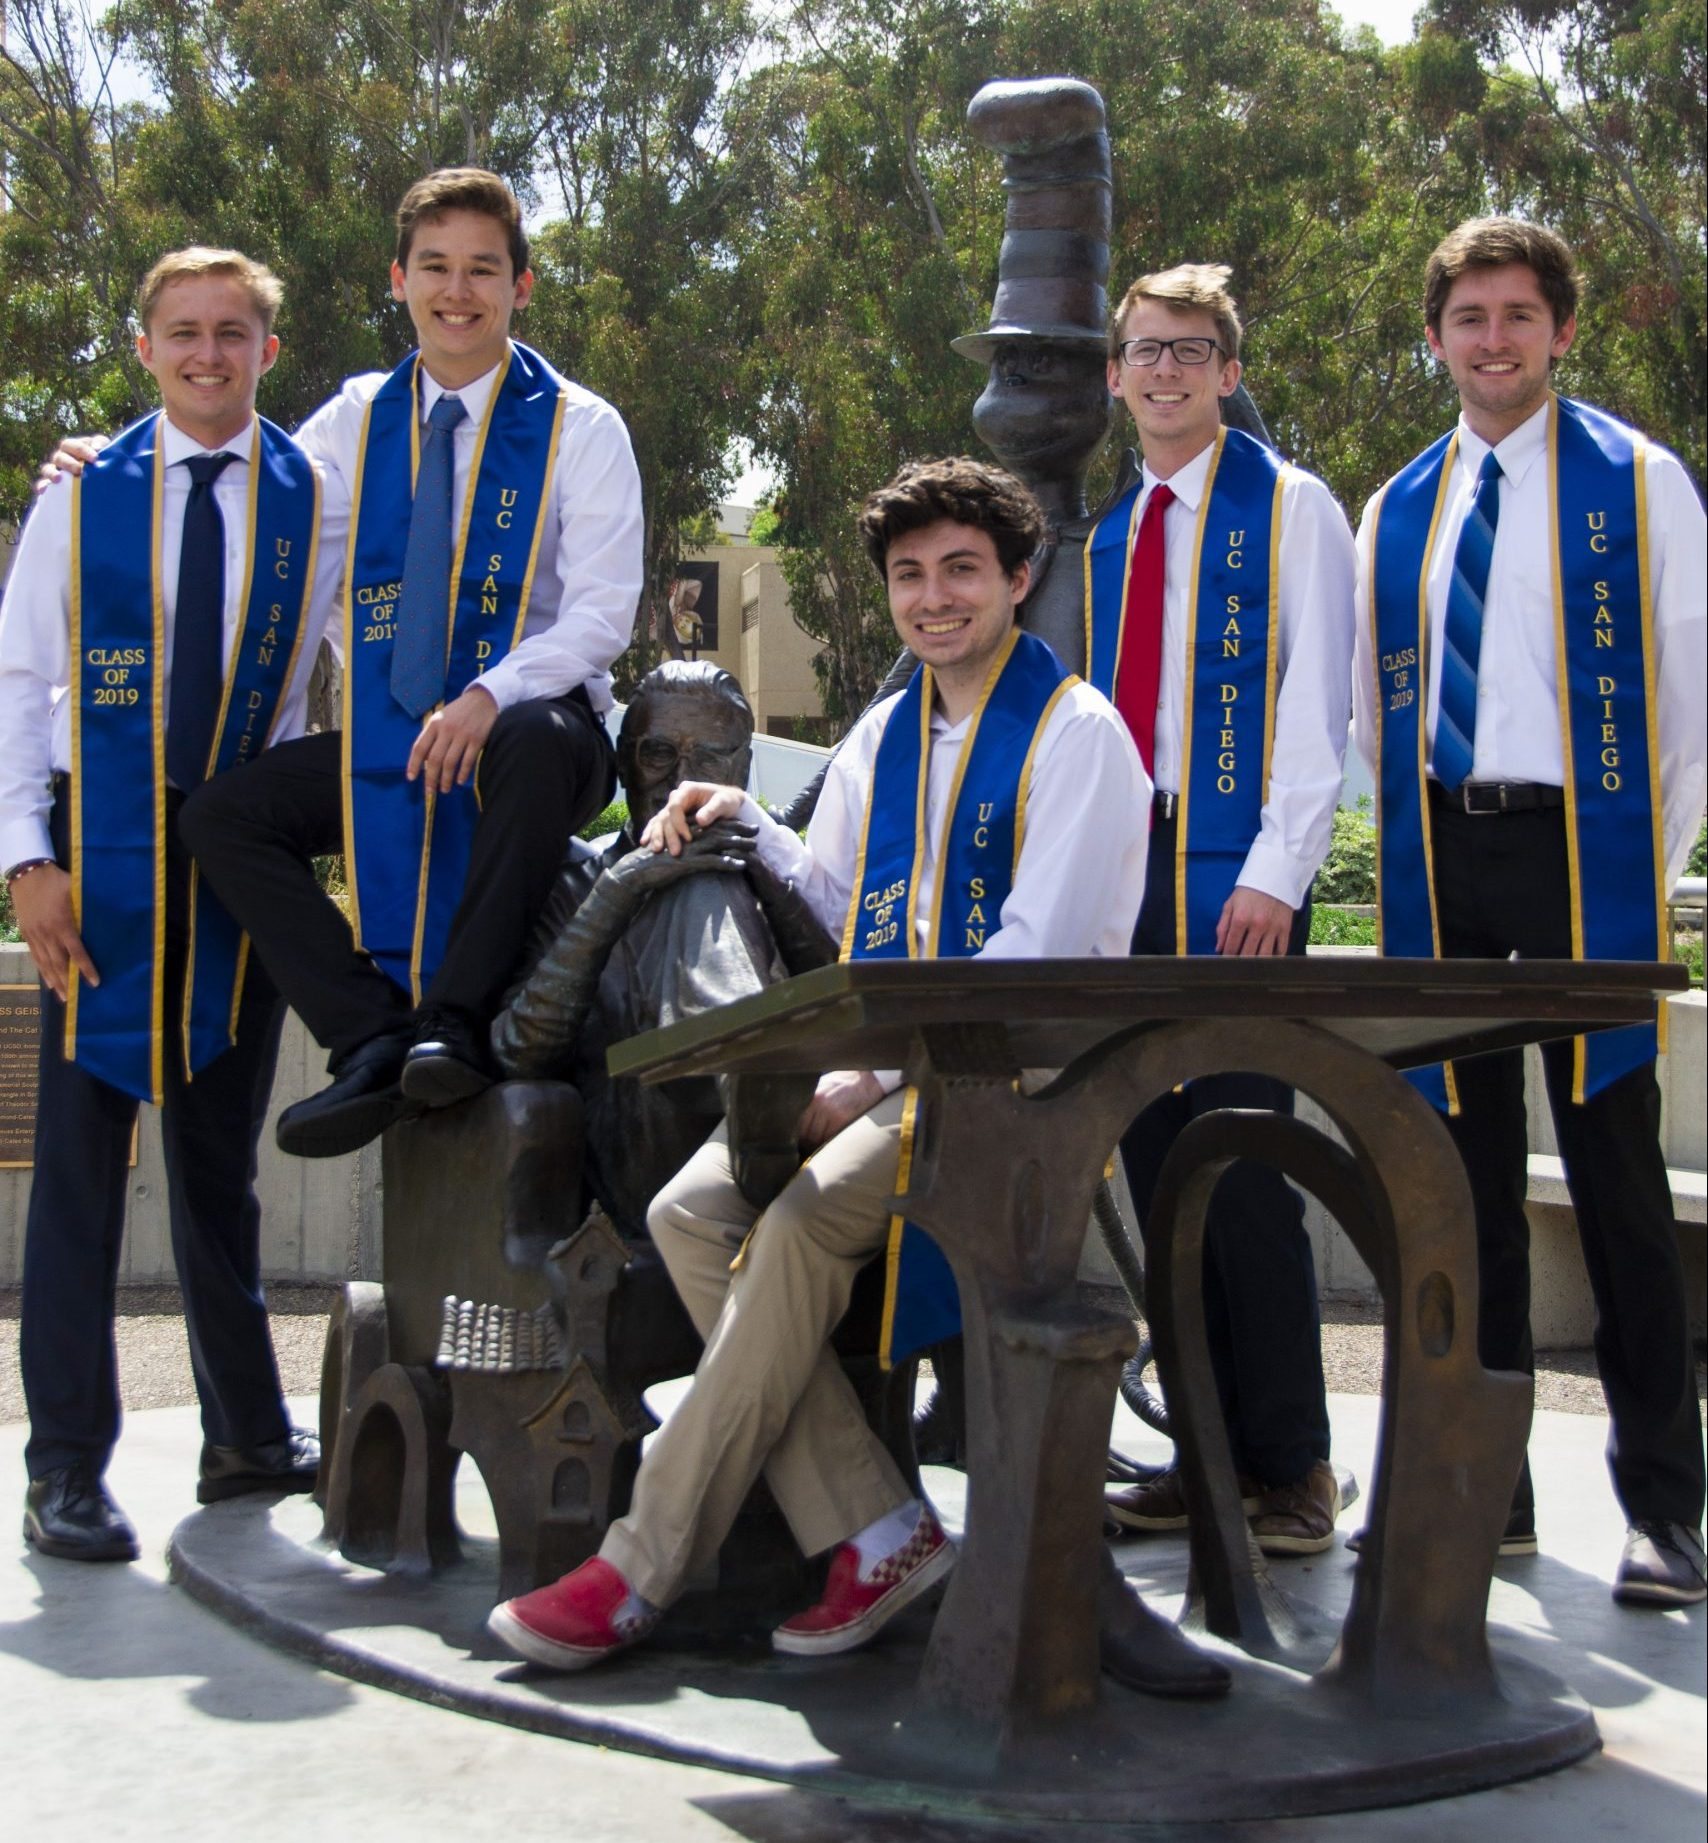 Group of students wearing their graduation stoles